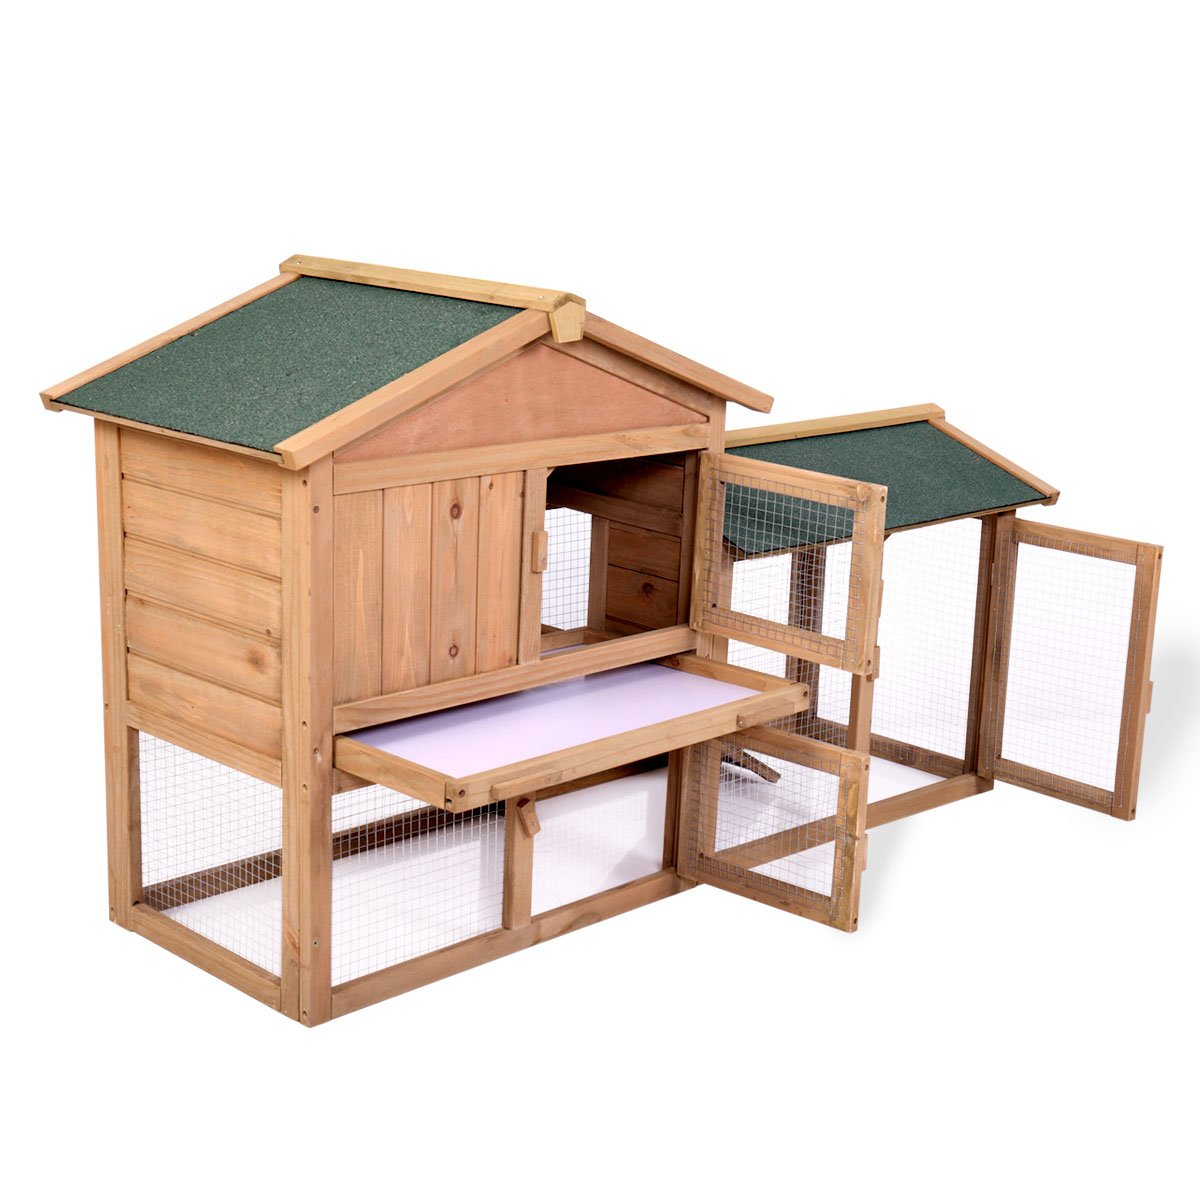 P PURLOVE Wood Bunny Hutch 54'' Large 2 Story Outdoor Bunny House with Removable Tray & Ramp, Backyard Garden Rabbit Cage/Guinea Pig House/Chicken Coop Nesting Box for Small Animals by P PURLOVE (Image #4)